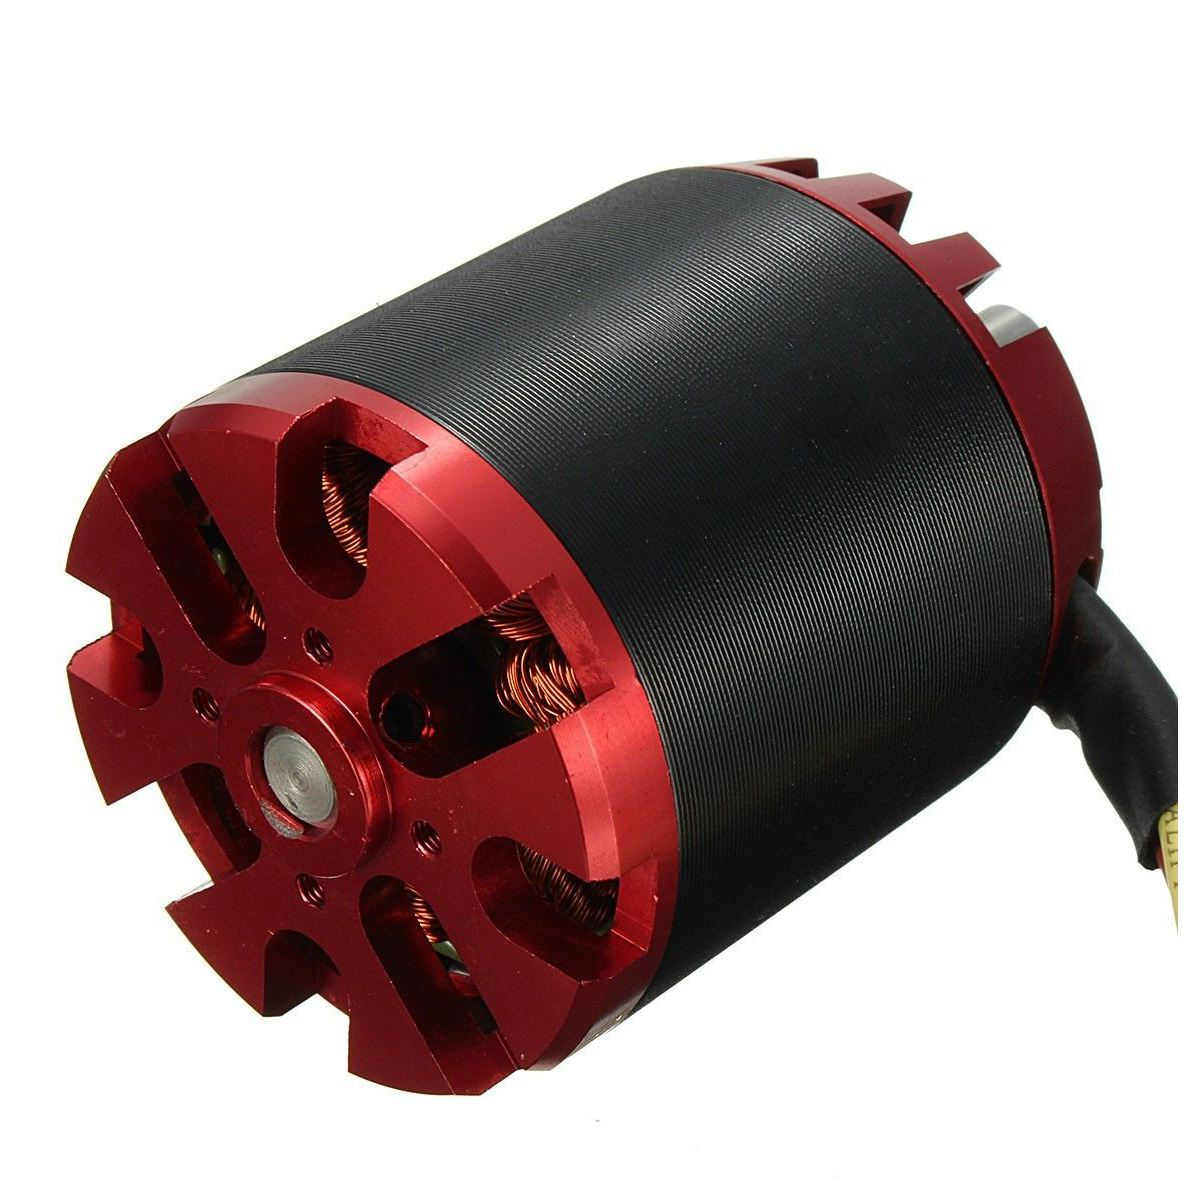 Remote Control Toys N5065 1820w 320kv Outrunner Brushless Motor For Rc Electric Skate Board Diy Kit